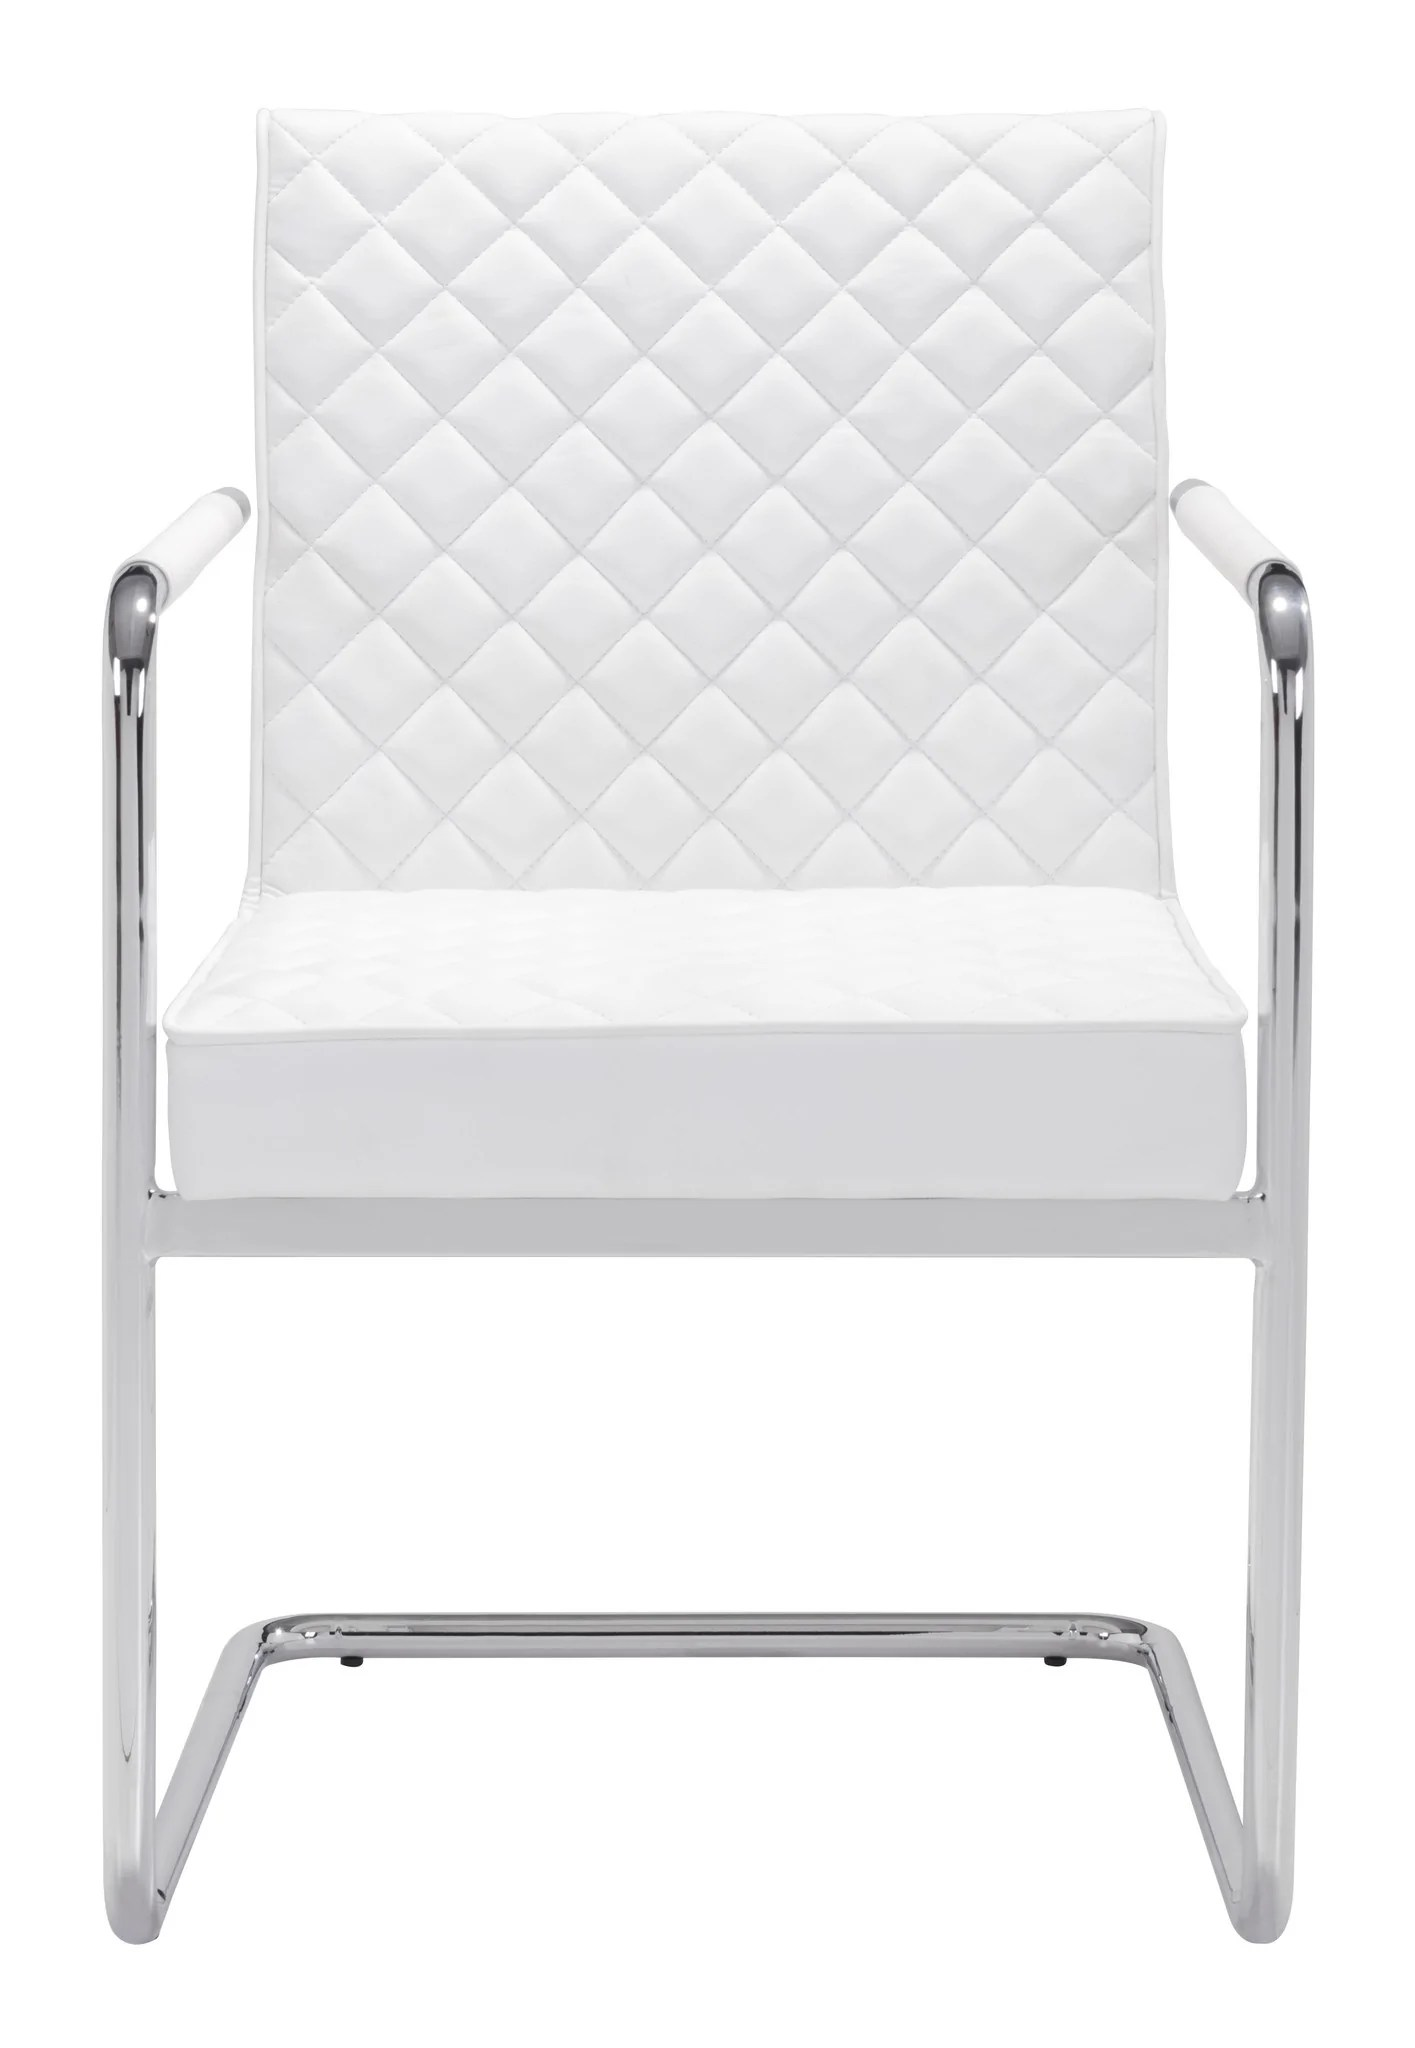 White Leather Chairs With Checkered Pattern By Zuo Officedesk Com